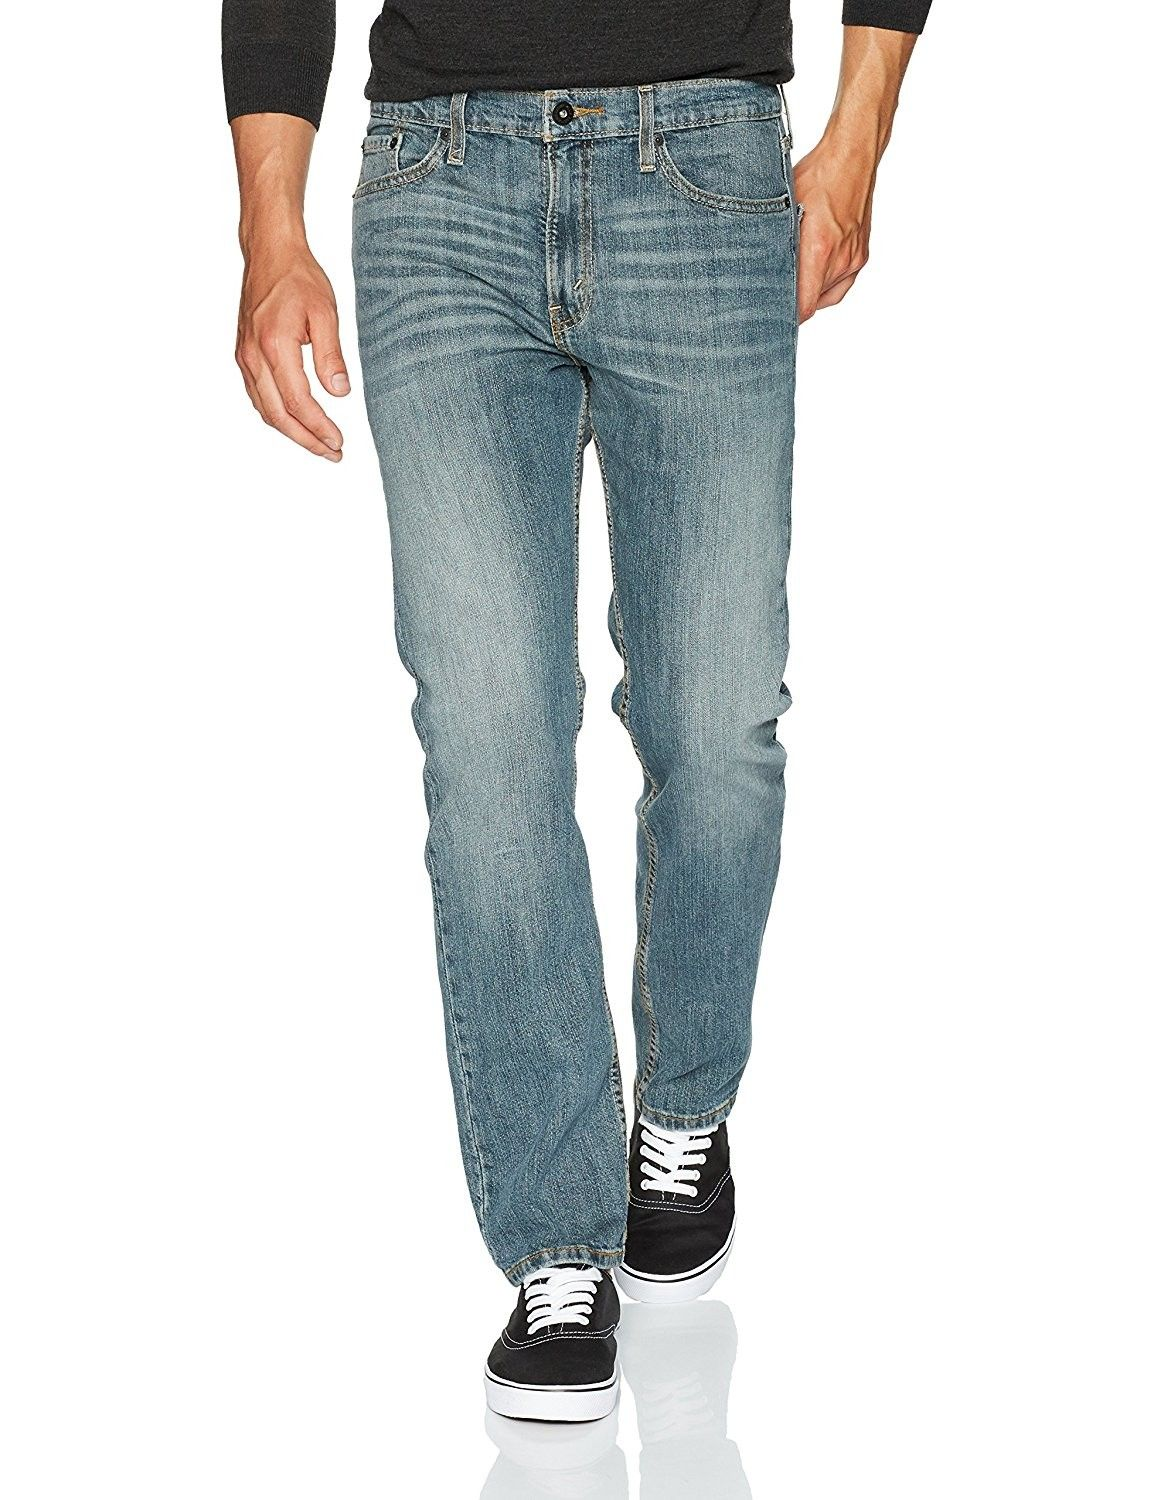 e191ceb5 Men's Clothing, Jeans, Signature by Levi Strauss & Co. Gold Label Men's  Slim Straight Fit Jeans - Elk - CL1844C6422 #fashion #Jeans #men #outfits # pants